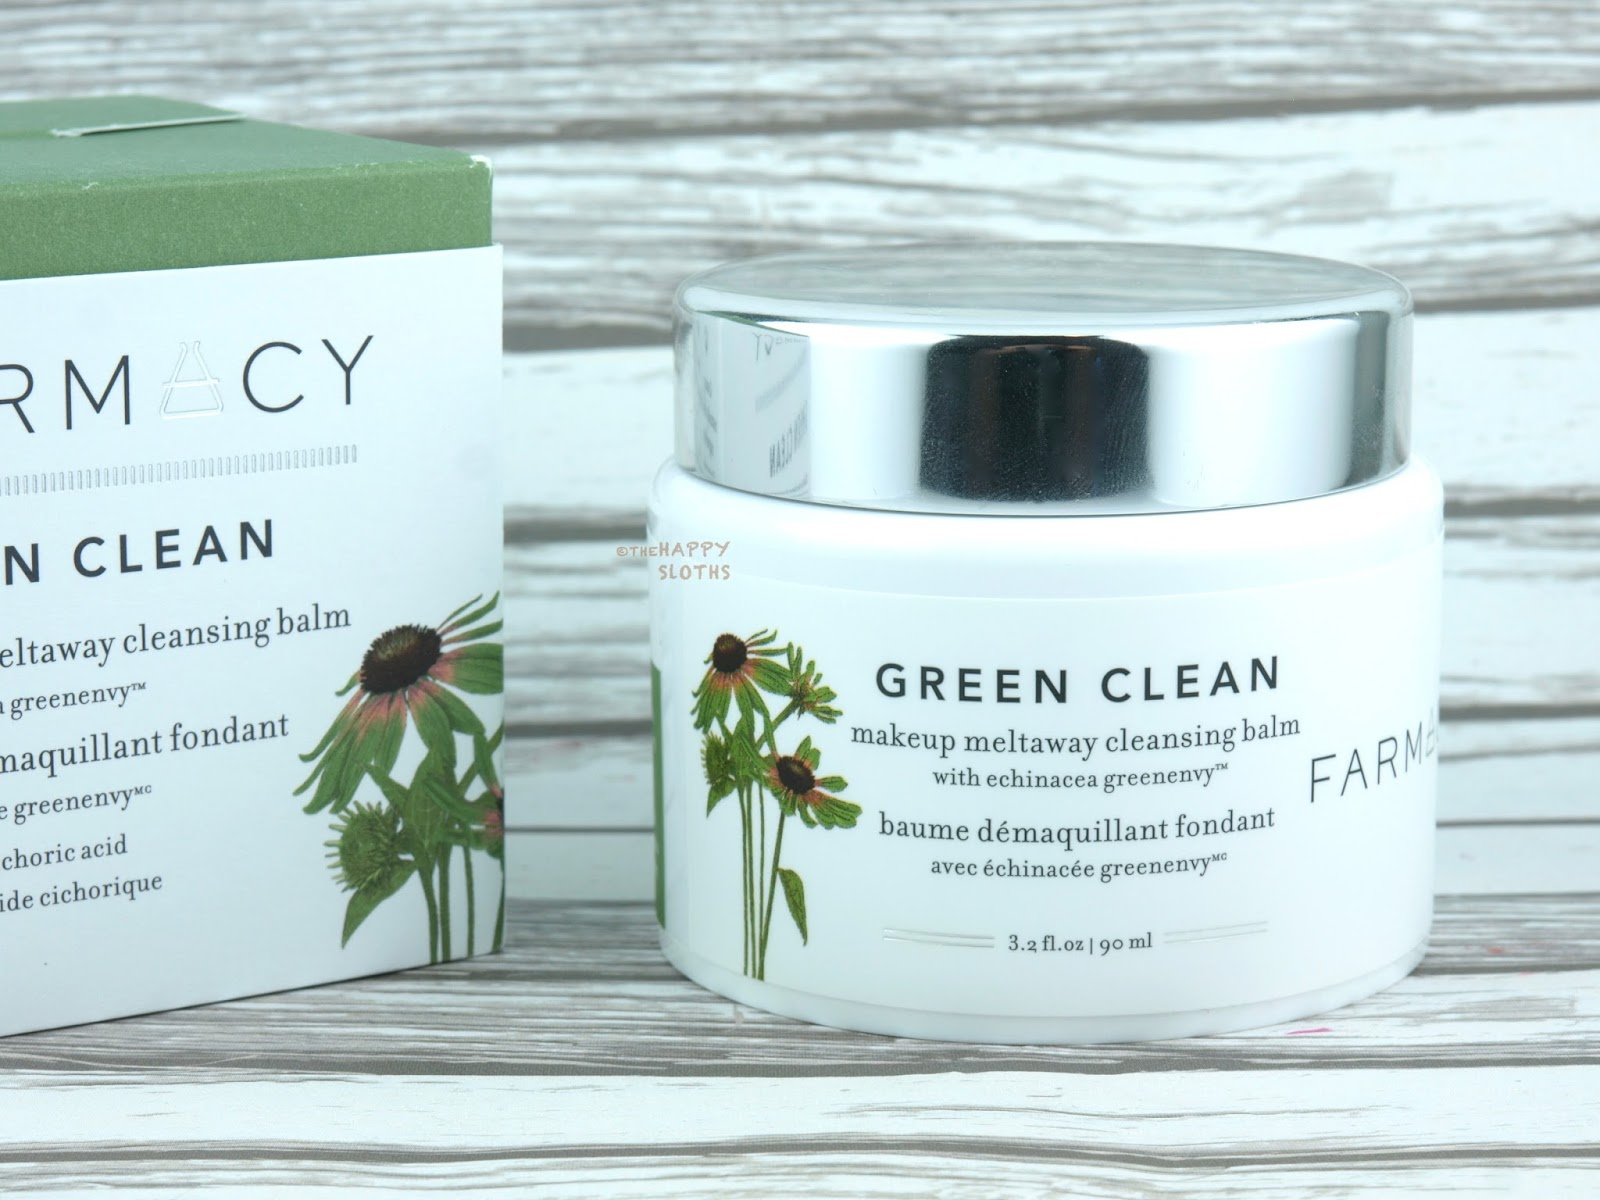 Farmacy Green Clean Makeup Meltaway Cleansing Balm: Review